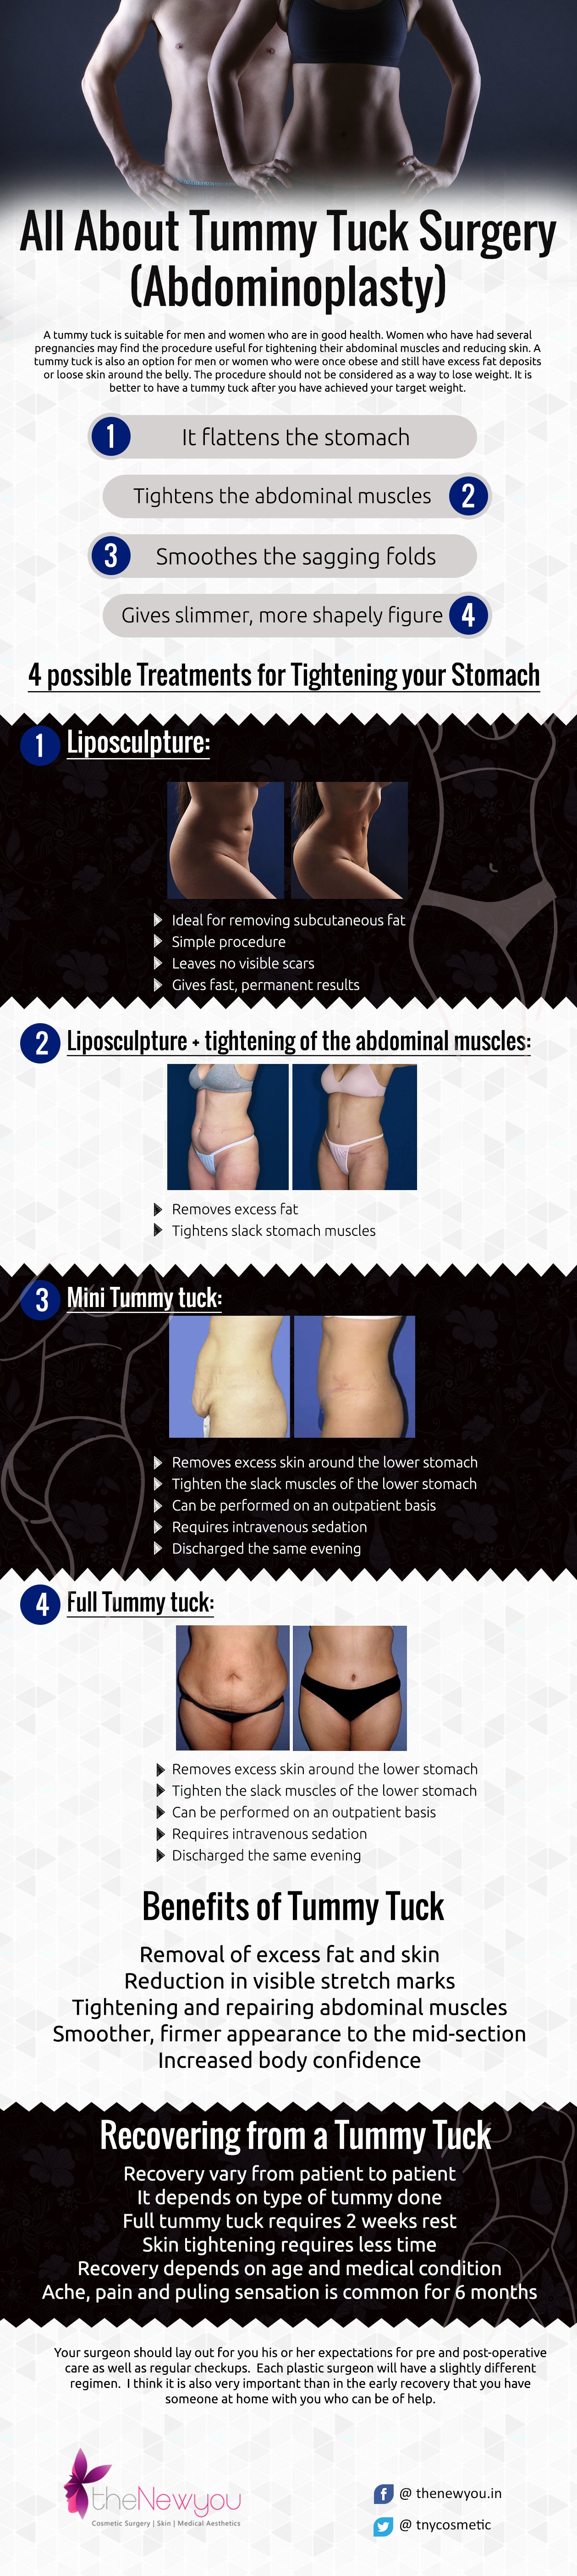 Tummy Tuck surgery - Abdominoplasty